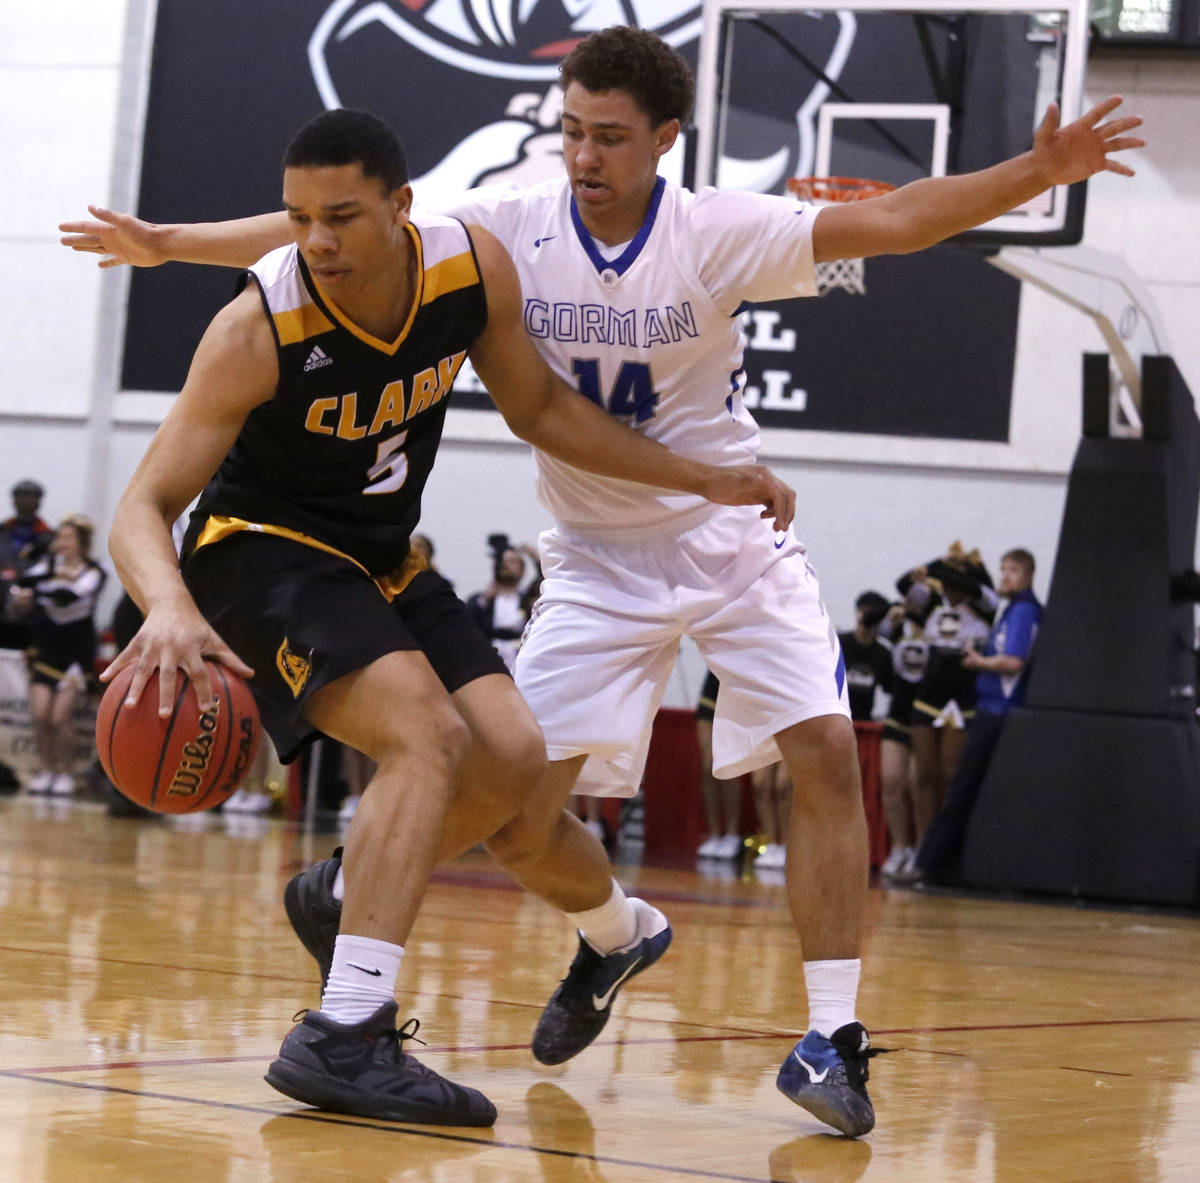 Clark's Deshawn Wilson (5) dribbles against Bishop Gorman's Saxton Howard (14) during the secon ...